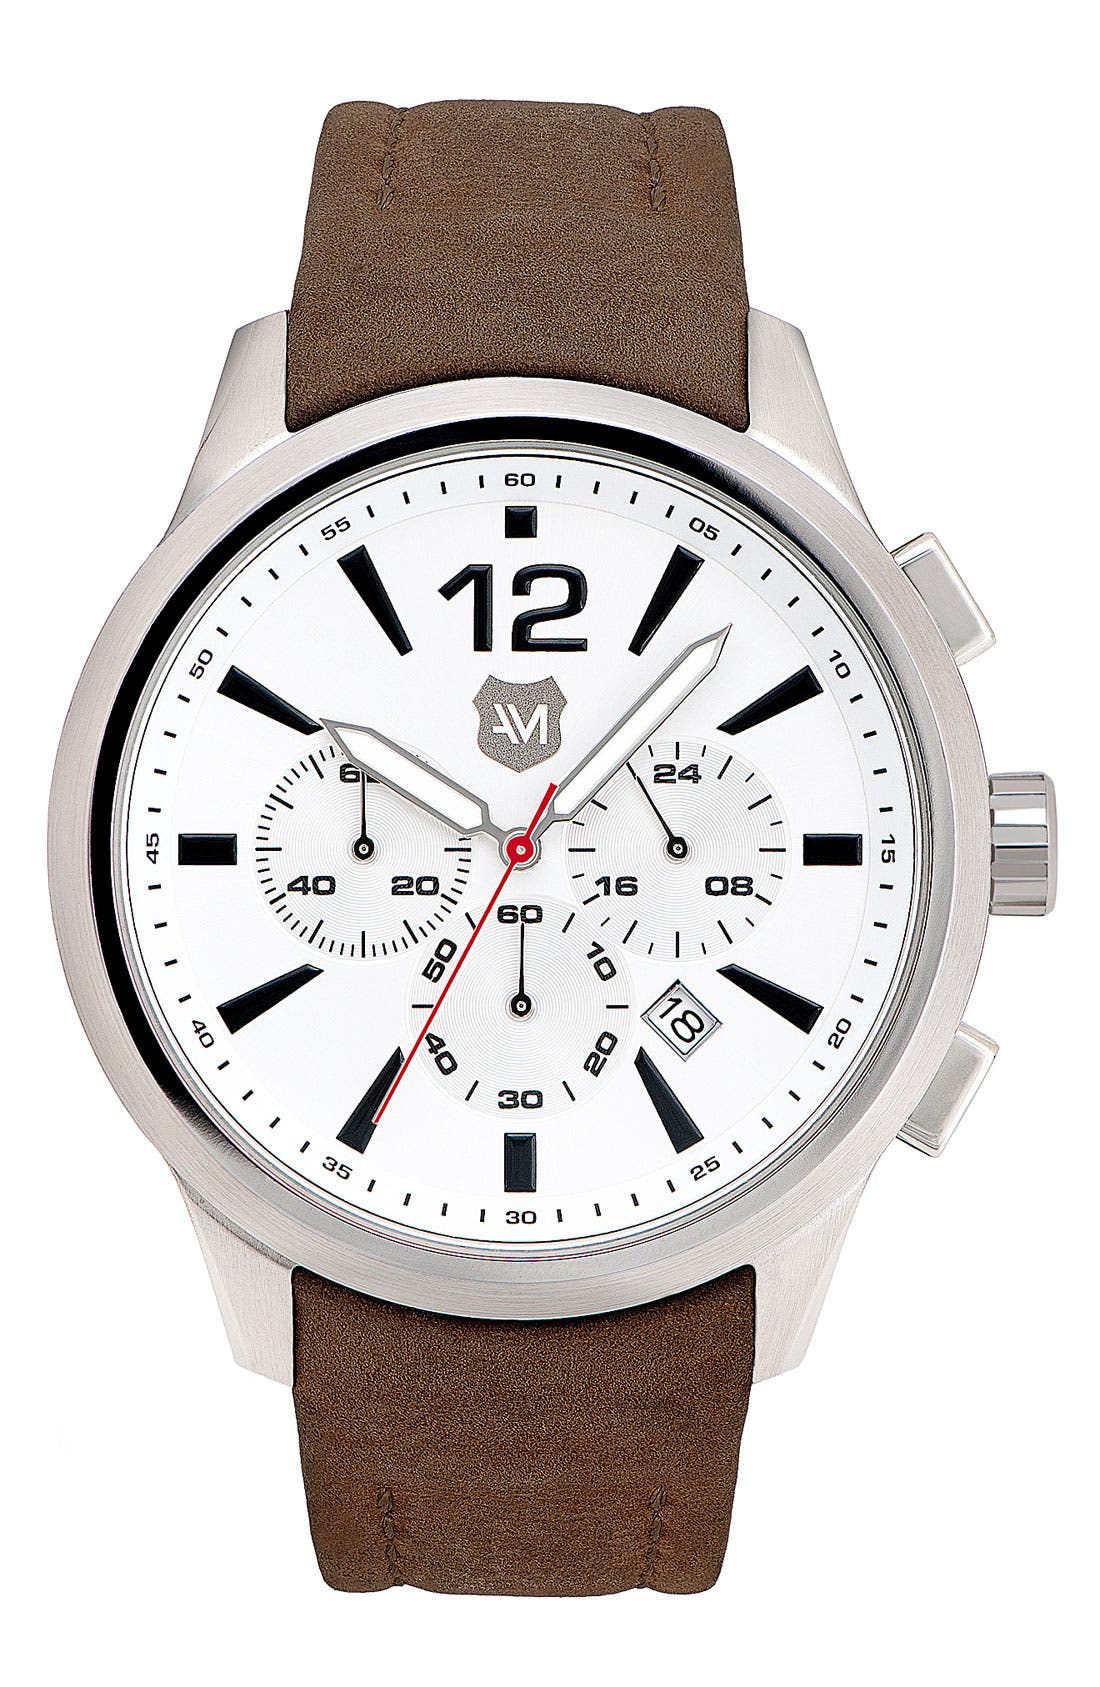 Main Image - Andrew Marc Watches 'Club Varsity' Leather Strap Watch